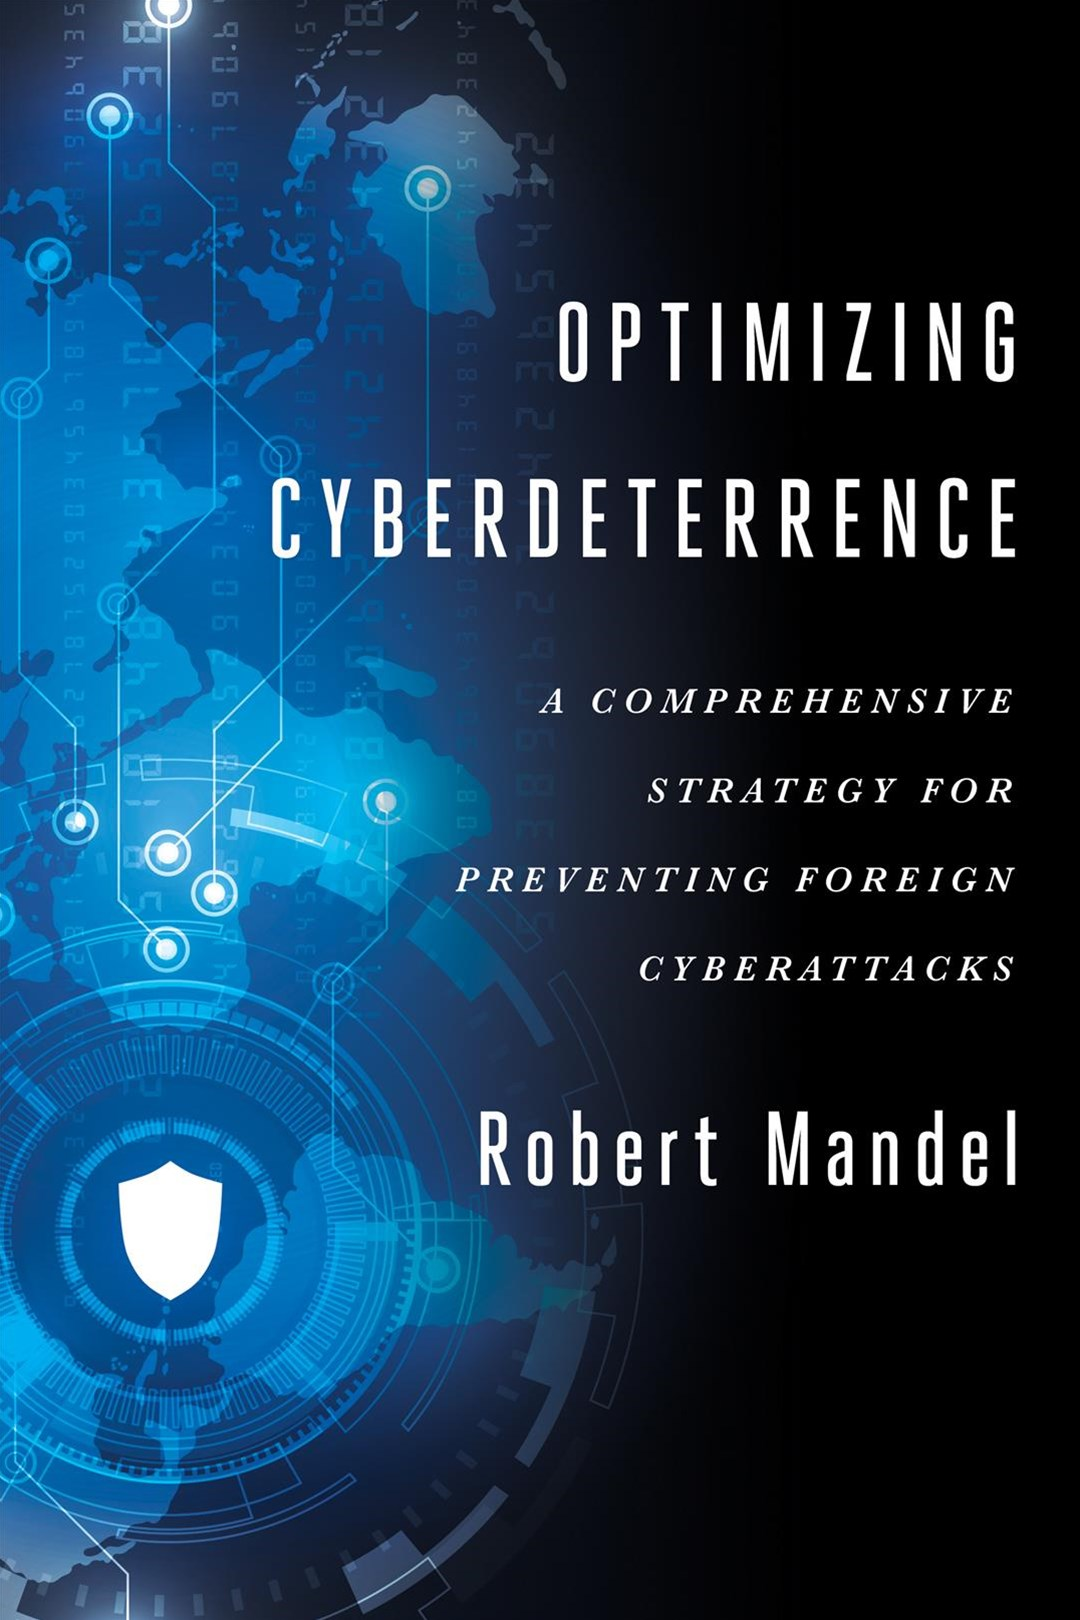 Optimizing Cyberdeterrence